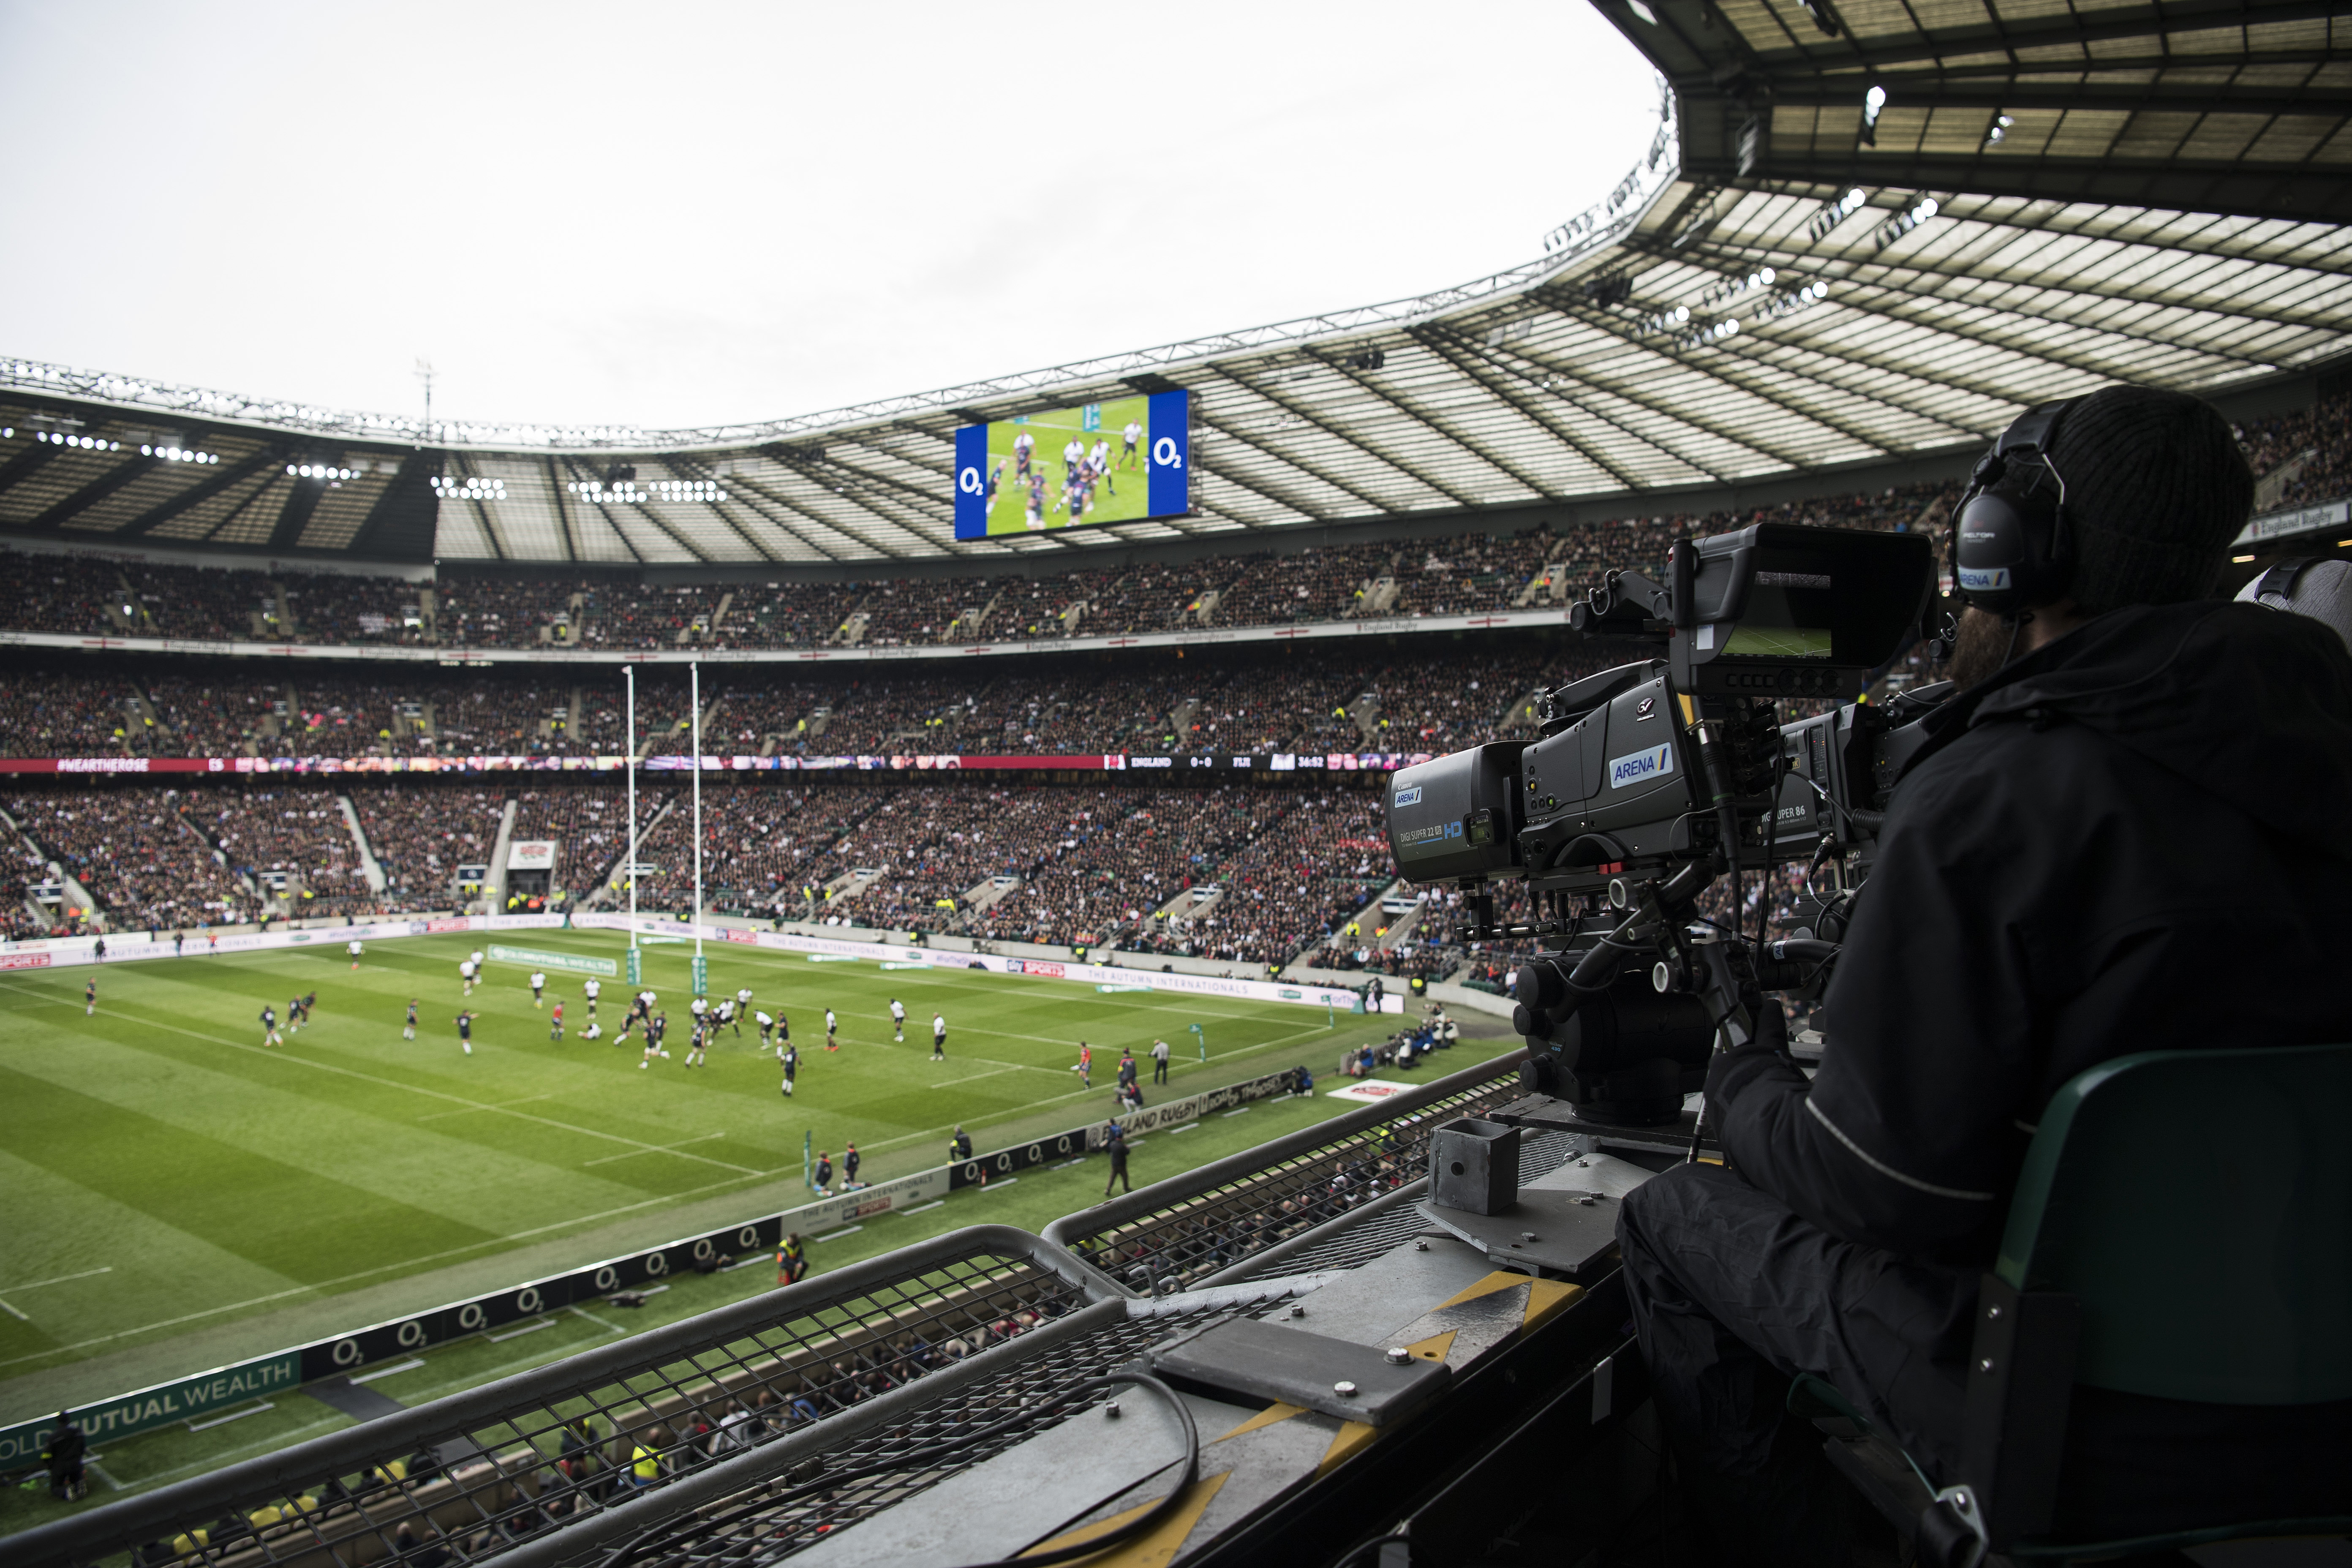 Sky's the limit: Behind the scenes with Sky Sports on an England Rugby match day